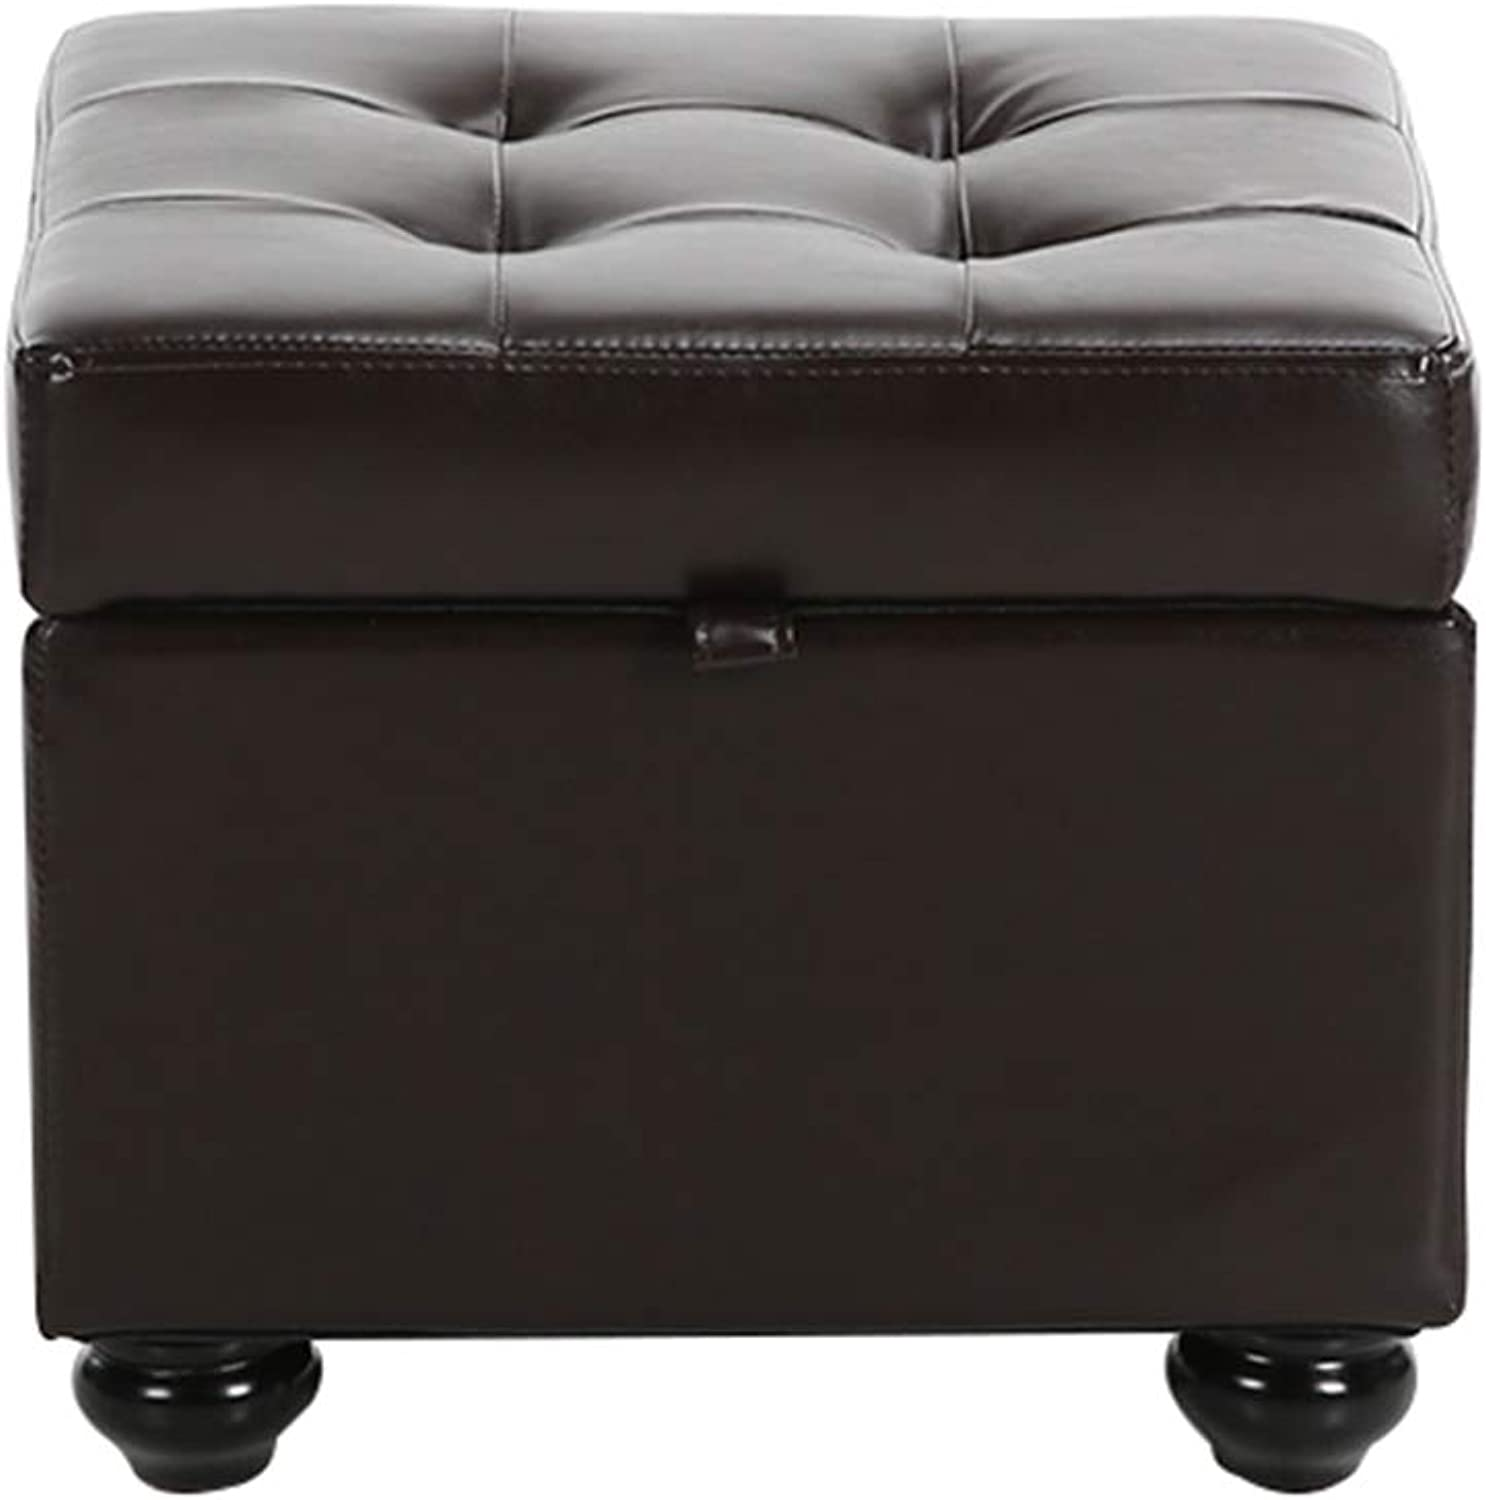 European Minimalist Sofa Stool, Bedroom Living Room Storage Stool - Leather Storage Stool - 44x44x37cm